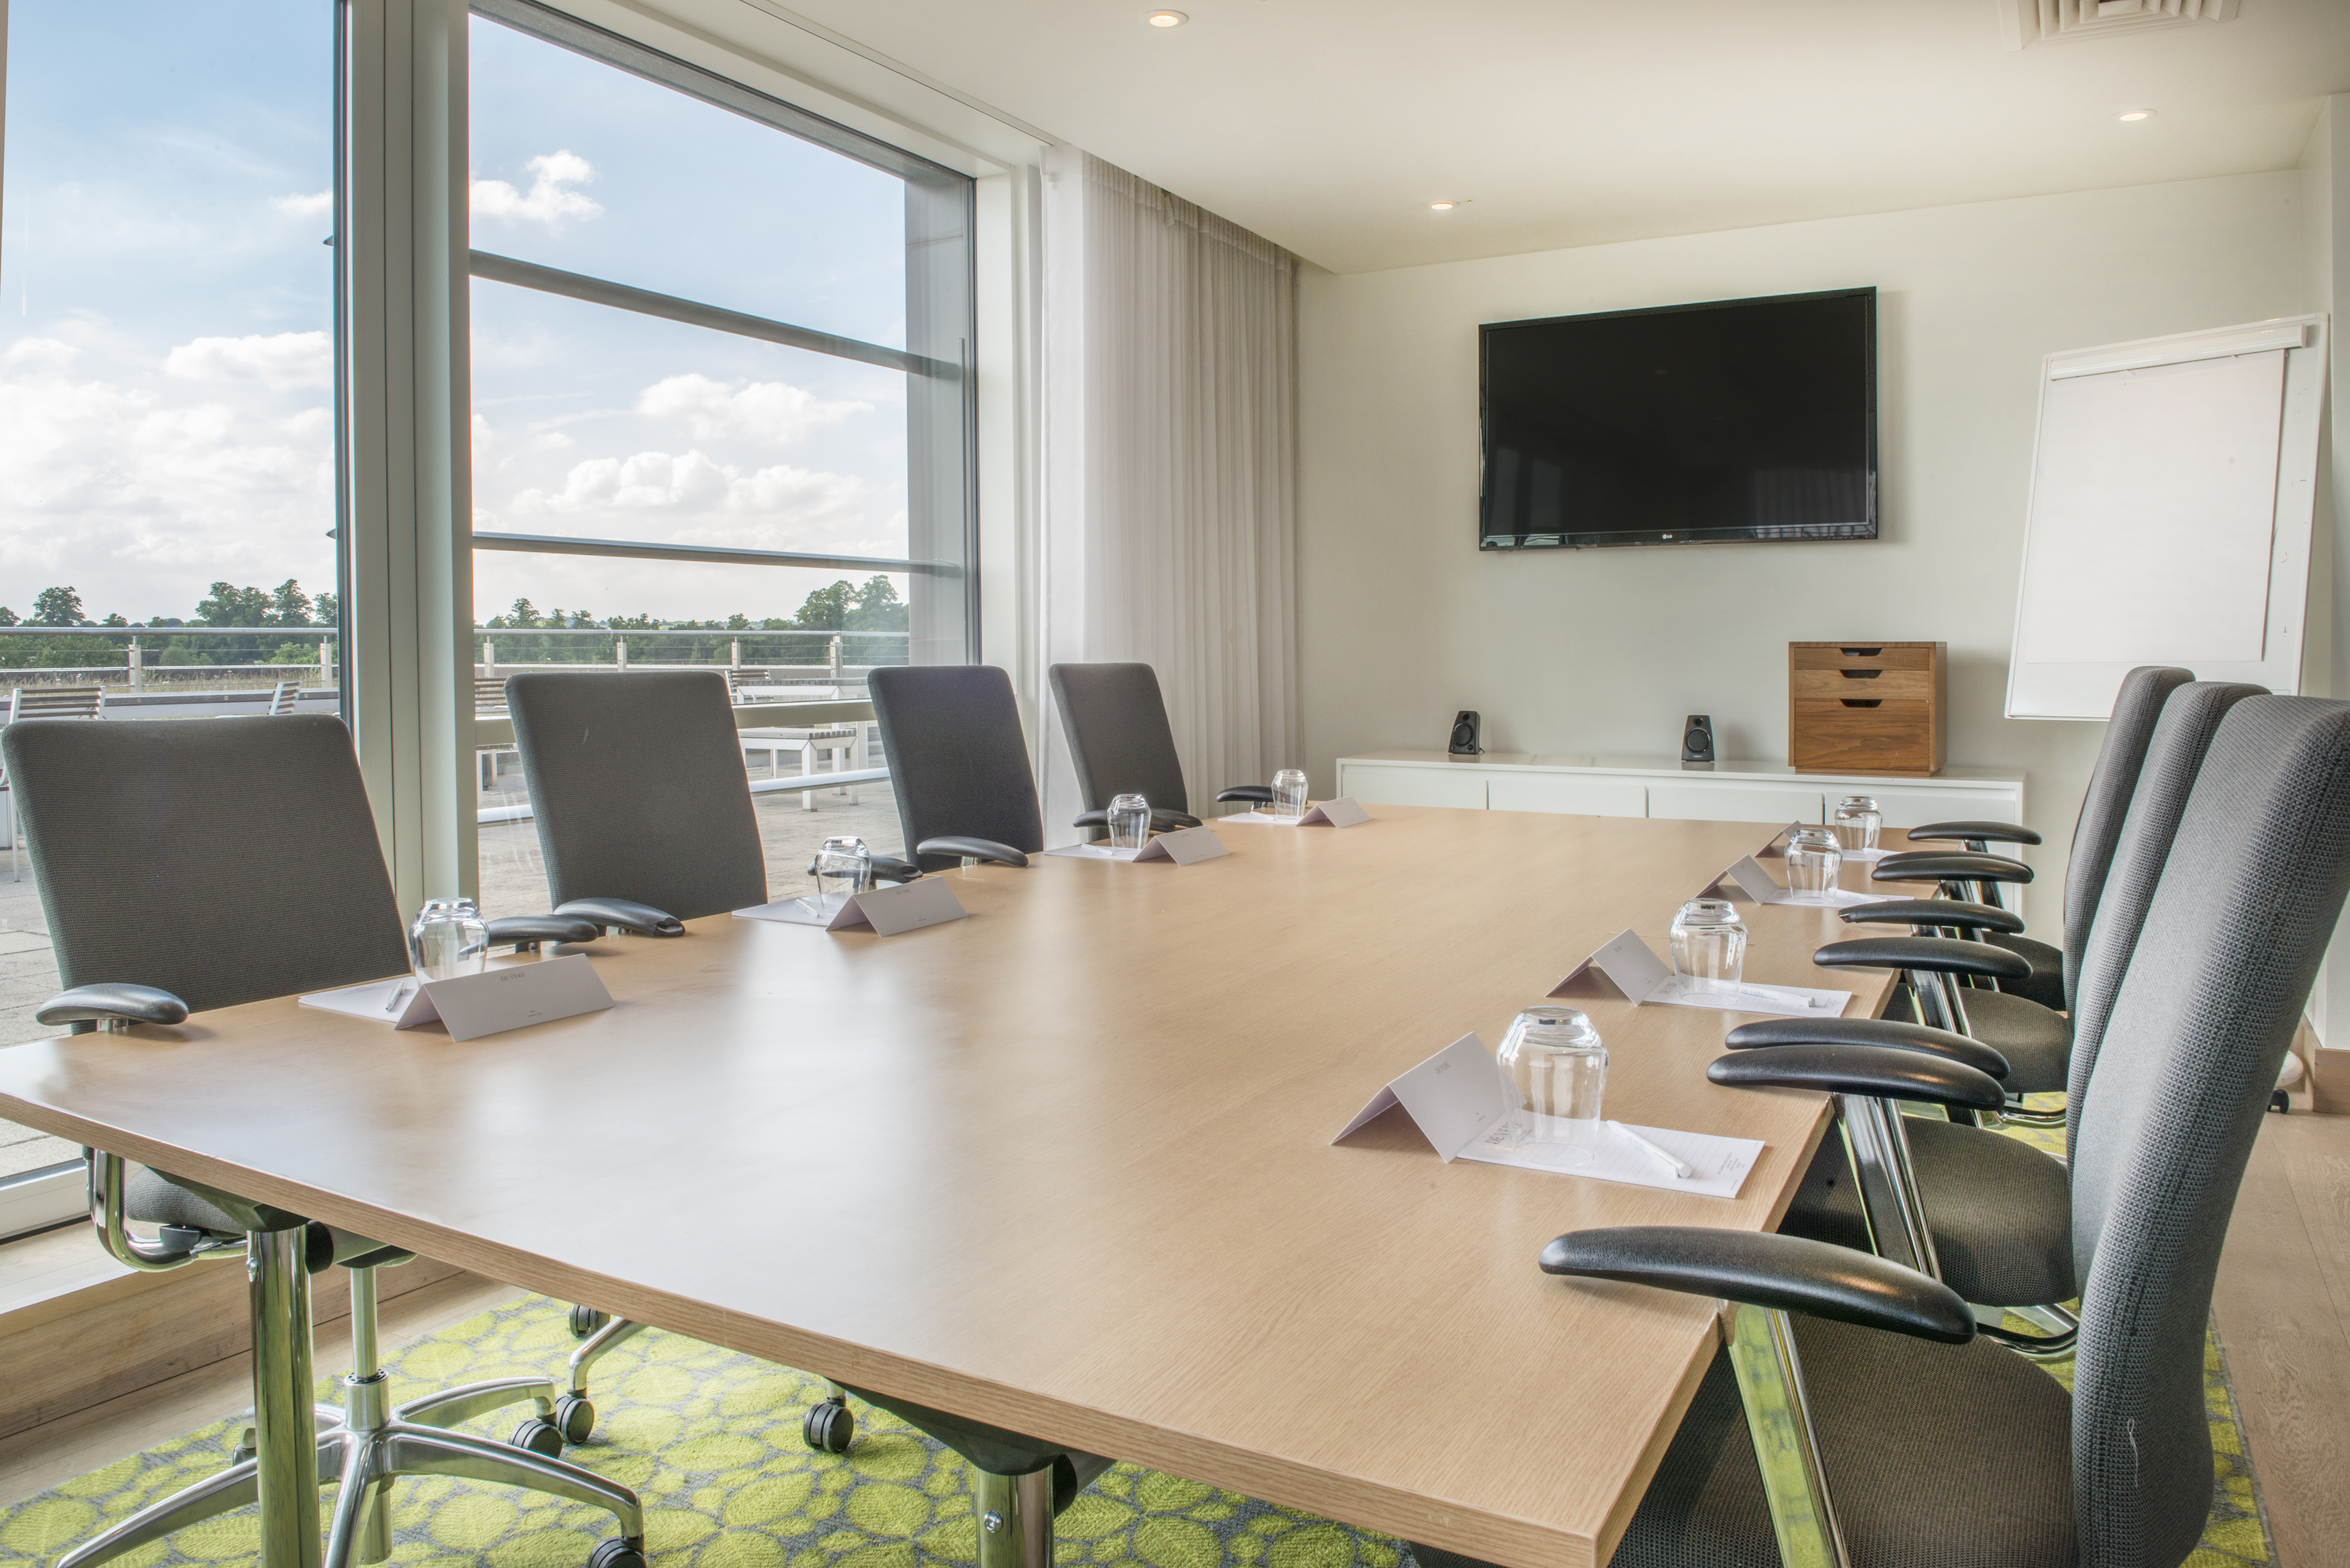 Orchard Hotel - Executive Lounge - Boardroom